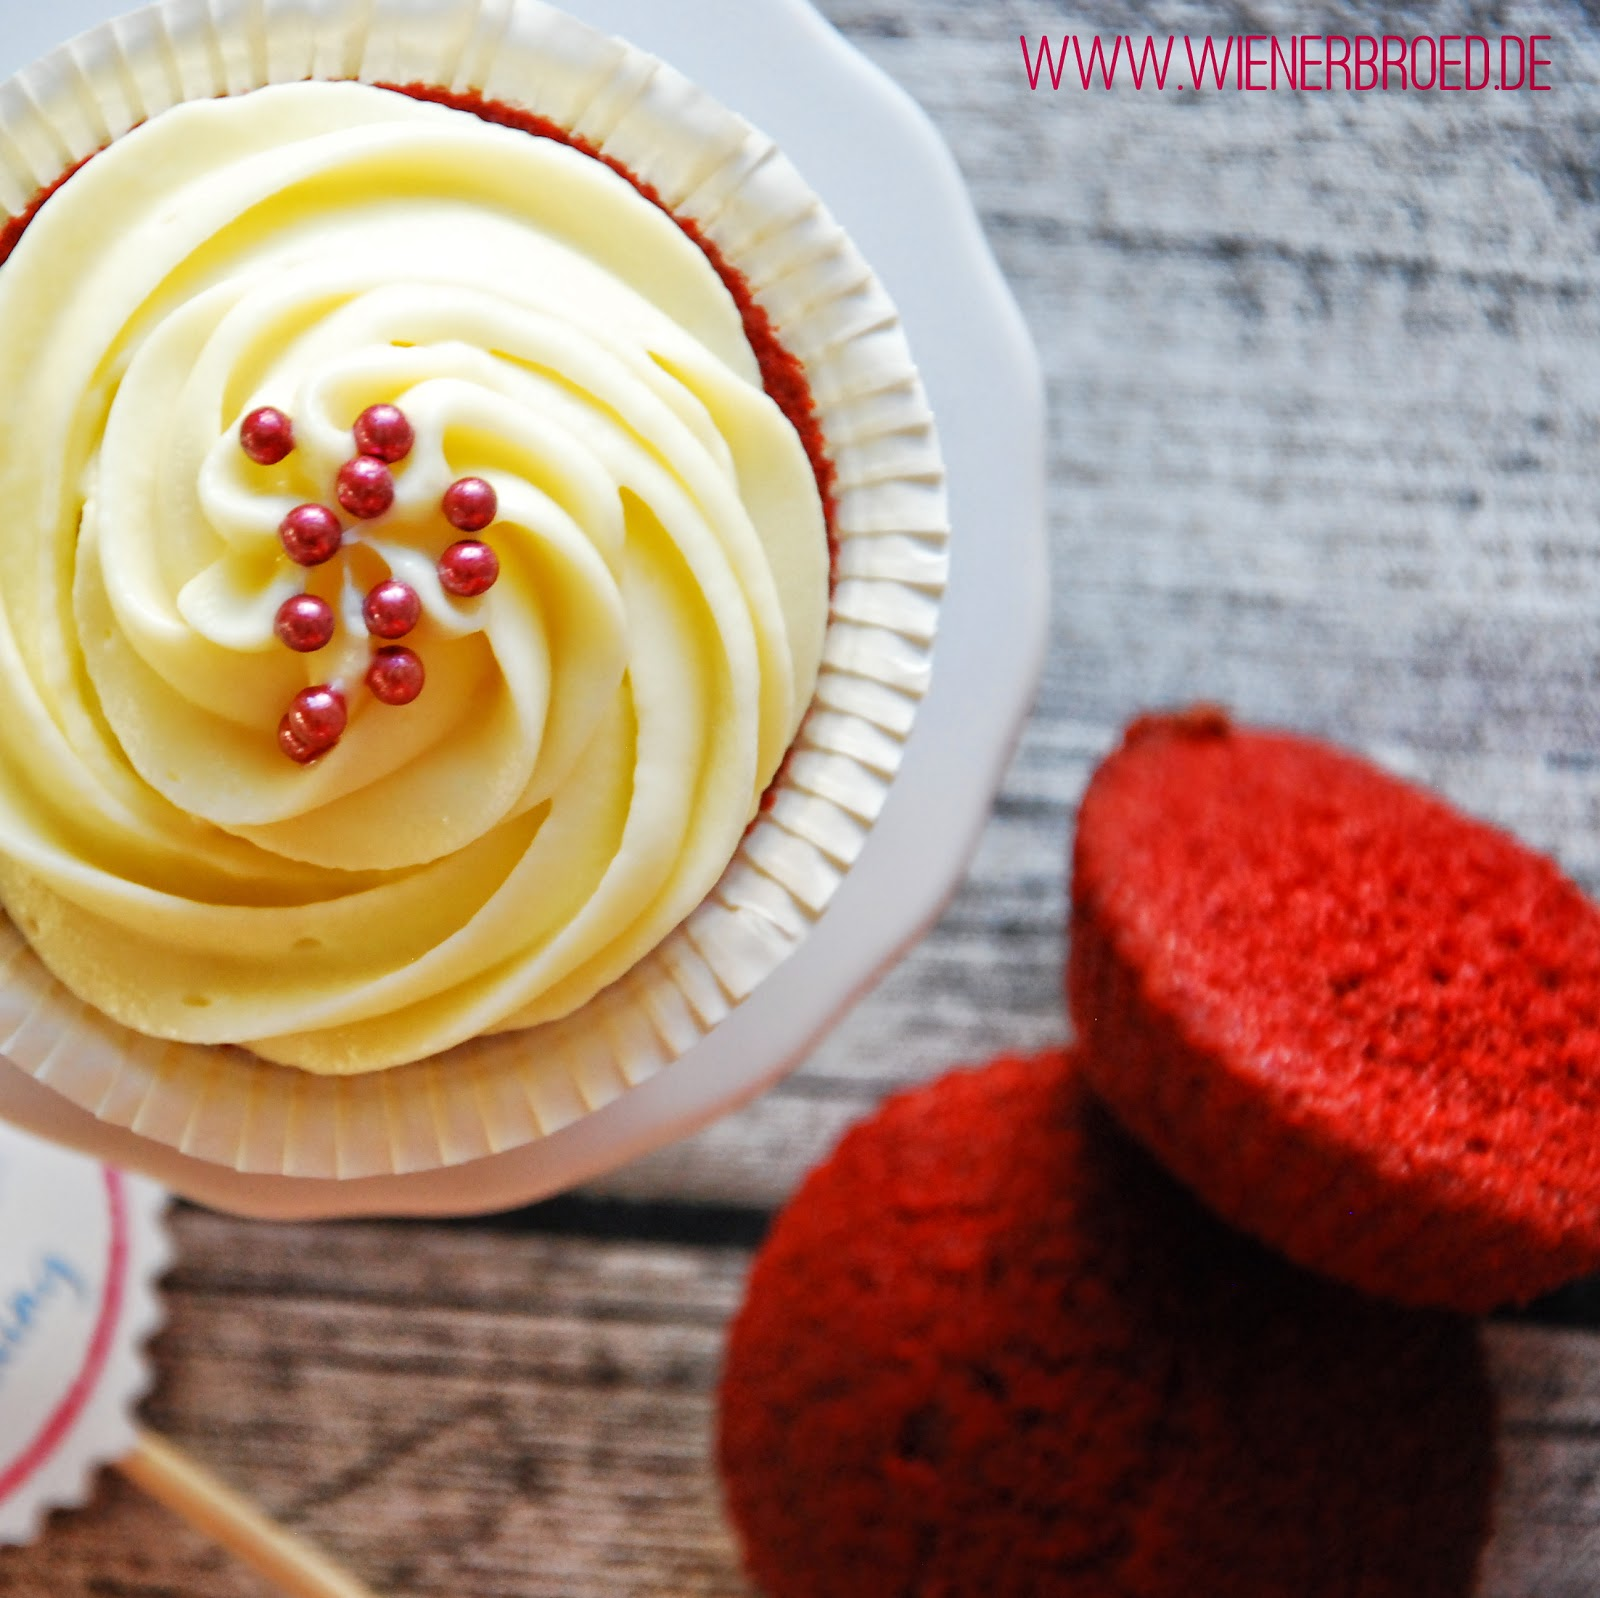 Red Velvet Cupcake with white chocolate frosting